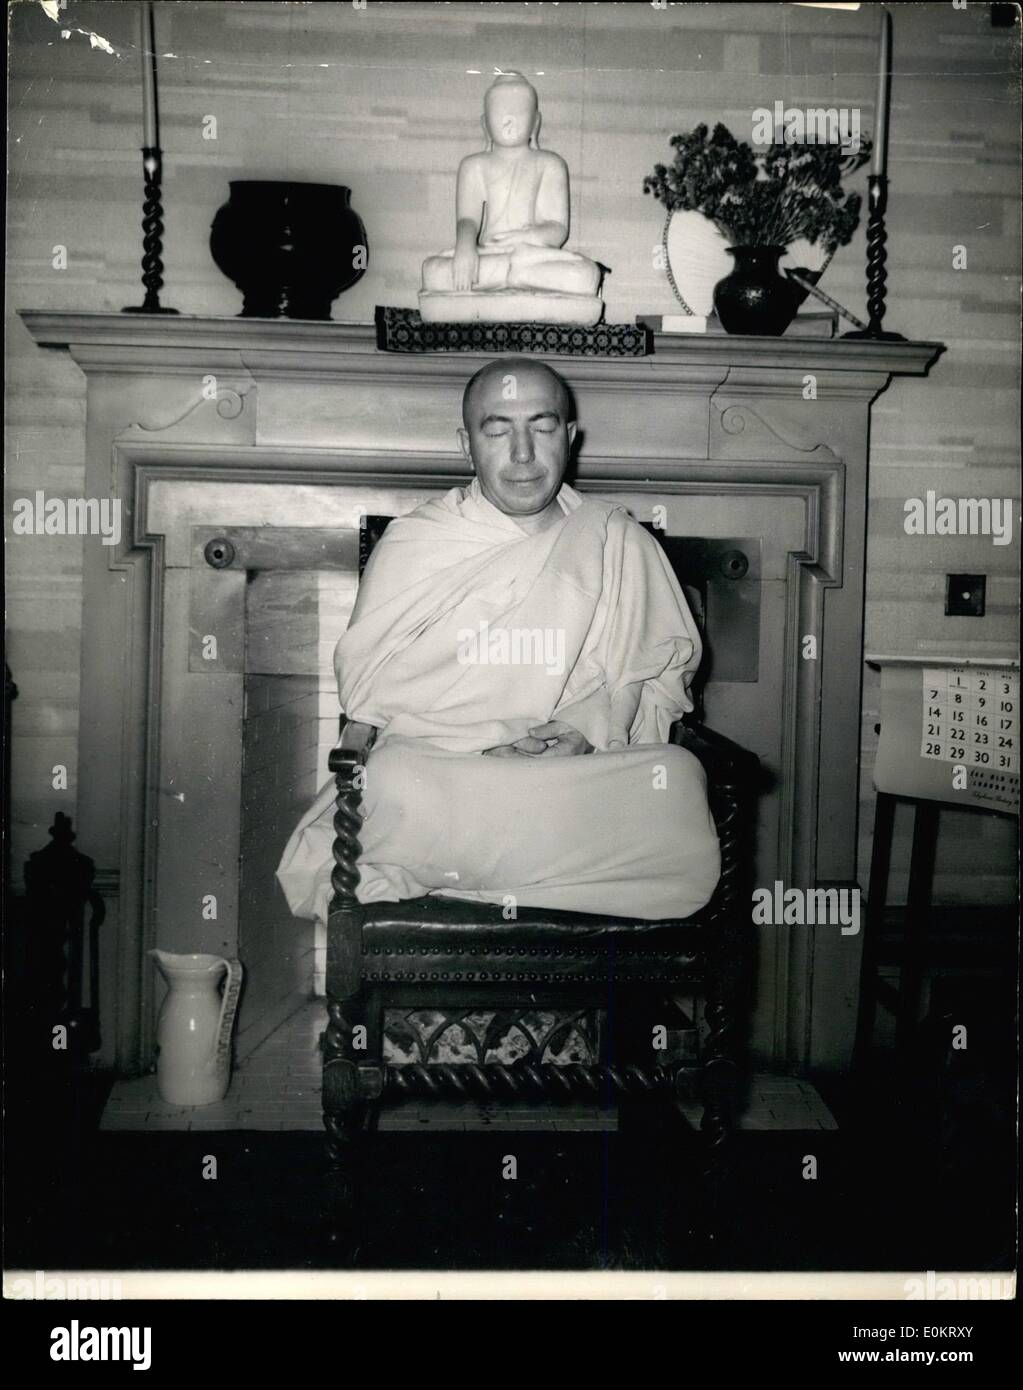 Aug. 08, 1949 - He sleeps anywhere but never in bed. 51-year old Buddhist Missionary in London.; In London is 51-year old Buddhist missionary, The Venerable Lokanatha, a shaven-headed monk who wears yellow ropes and sandals. He was born near Naples but was taken to America at the ago of four. To strenghten him against too much dependence on bodily comfort he has not slept in a bed for sixteen years. On his journey to England in the Queen mary he spent the nights in a chair in the   . He has established centres of Buddhism in New York, St - Stock Image